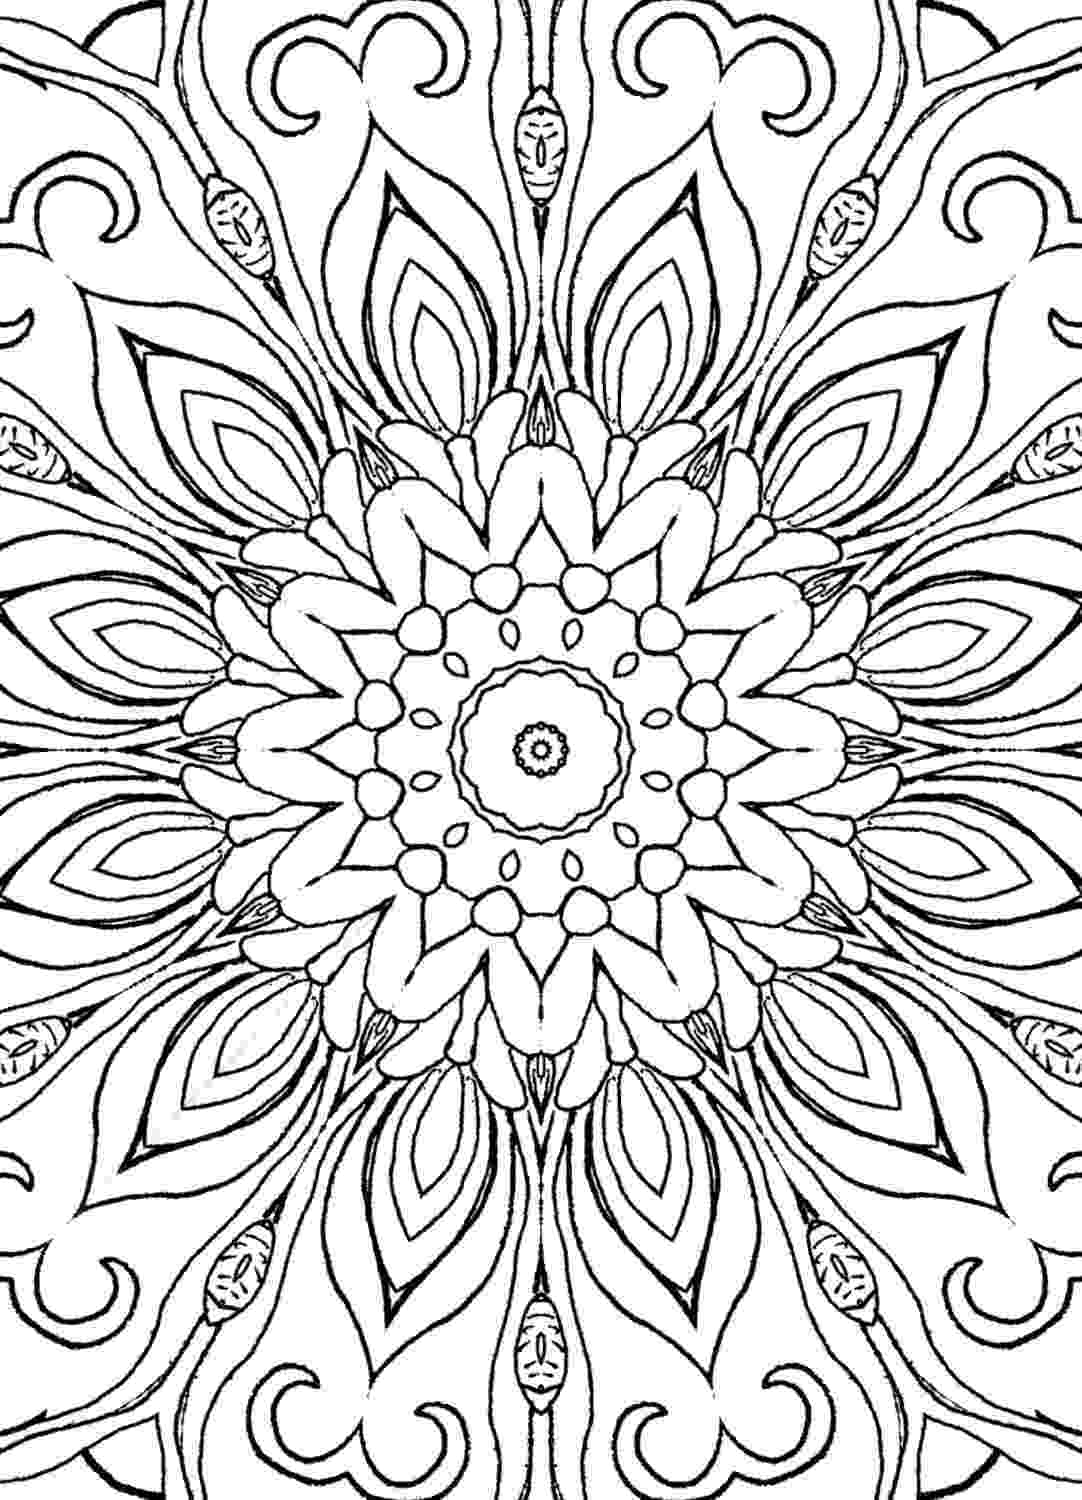 pattern coloring pages for adults pattern coloring pages best coloring pages for kids adults for pattern pages coloring